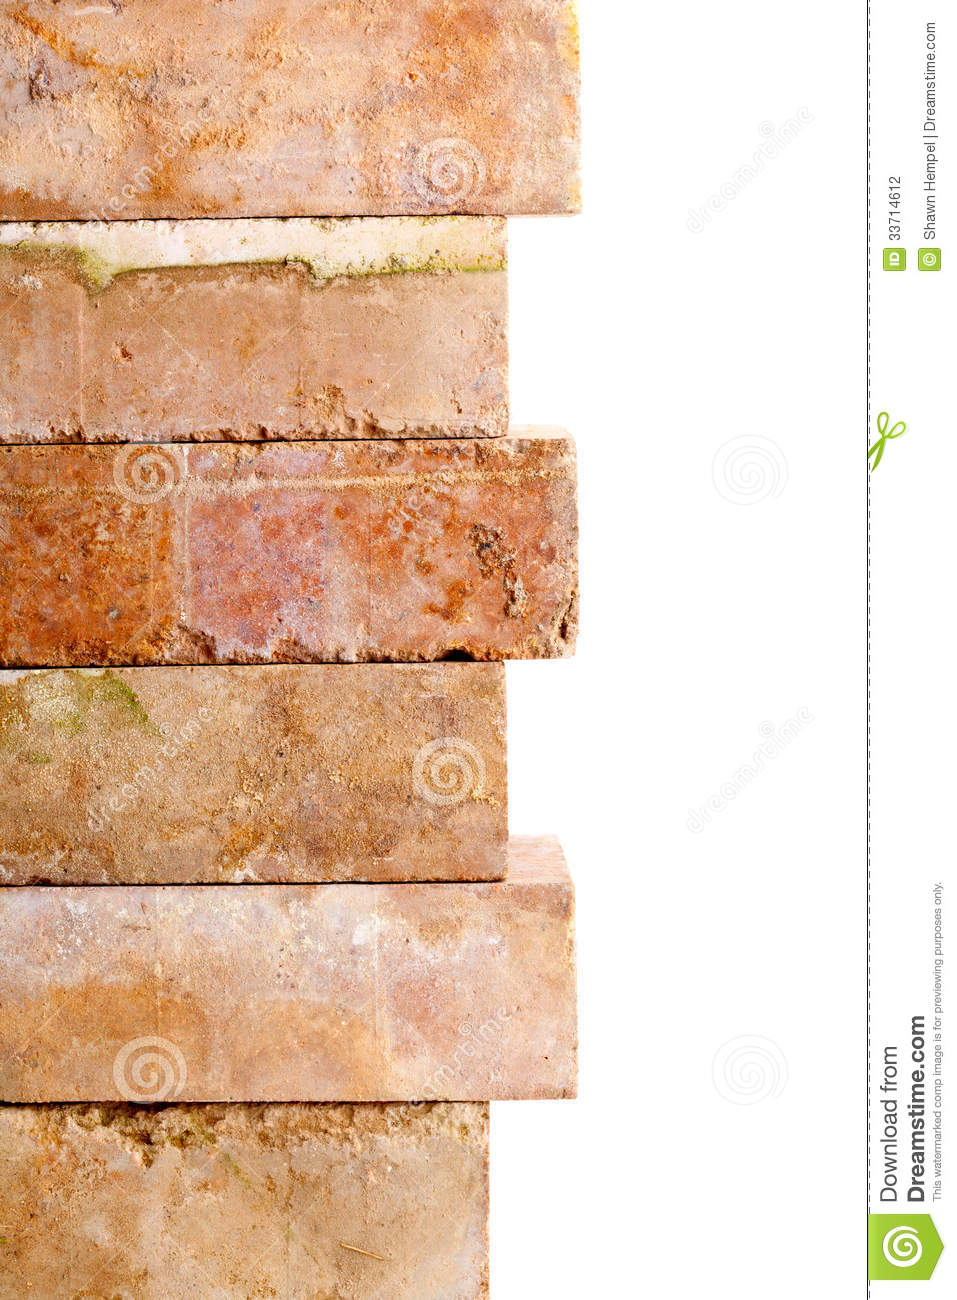 Old brick wall as a frame 01 stock photo image 18377500 - Old Brick Wall As A Frame 01 Stock Photo Image 18377500 1300x917 Grunge